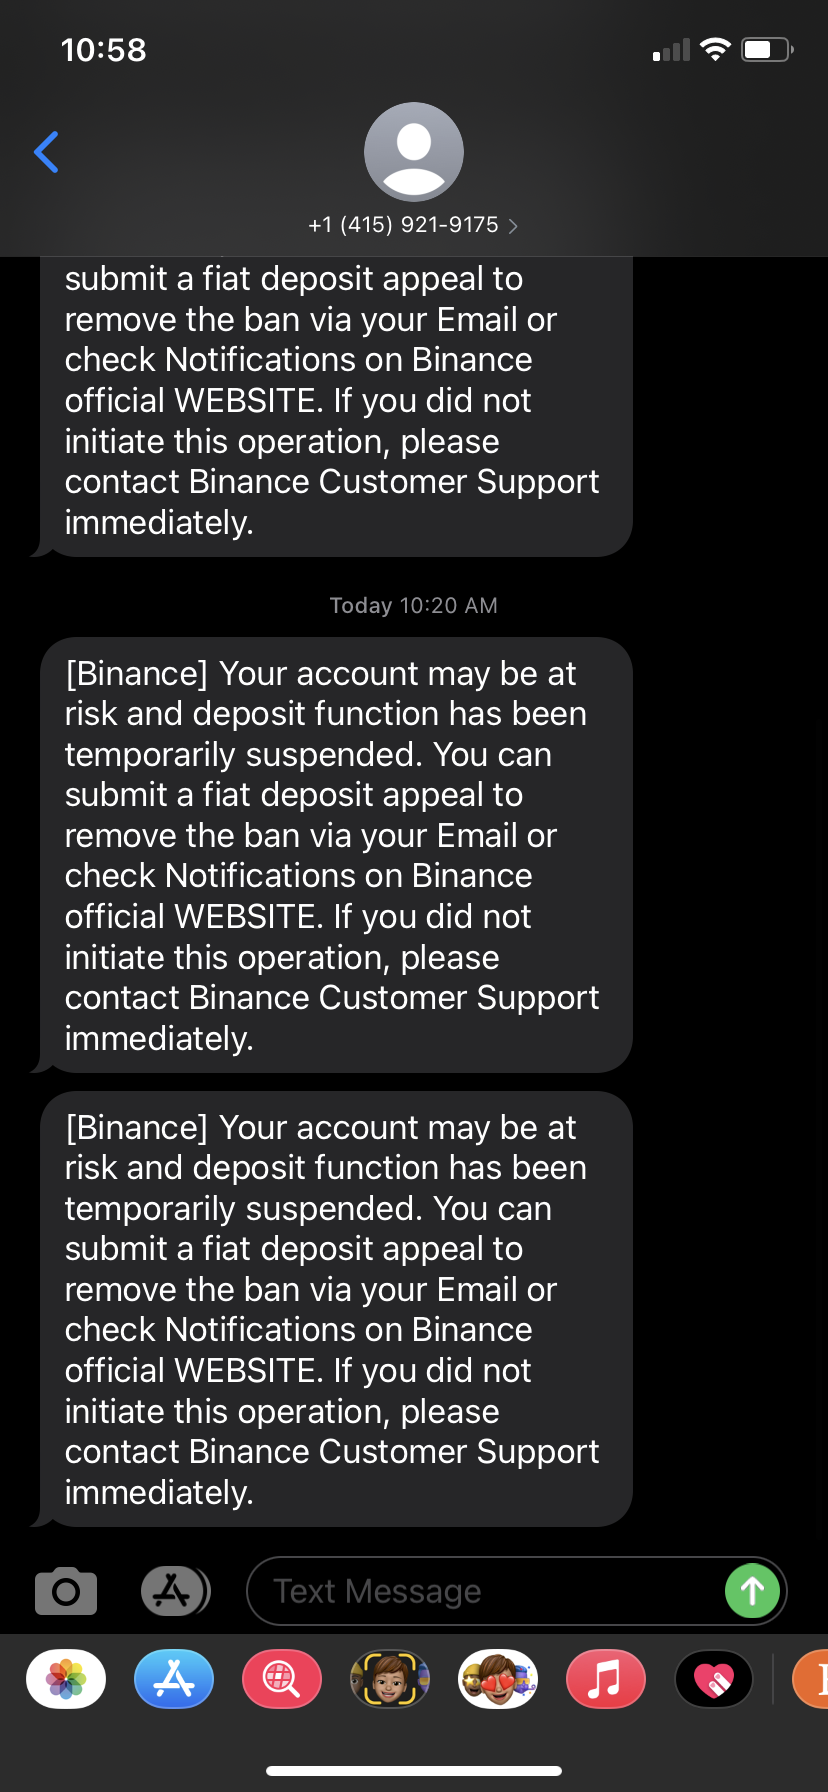 Deposit function temporarily suspended